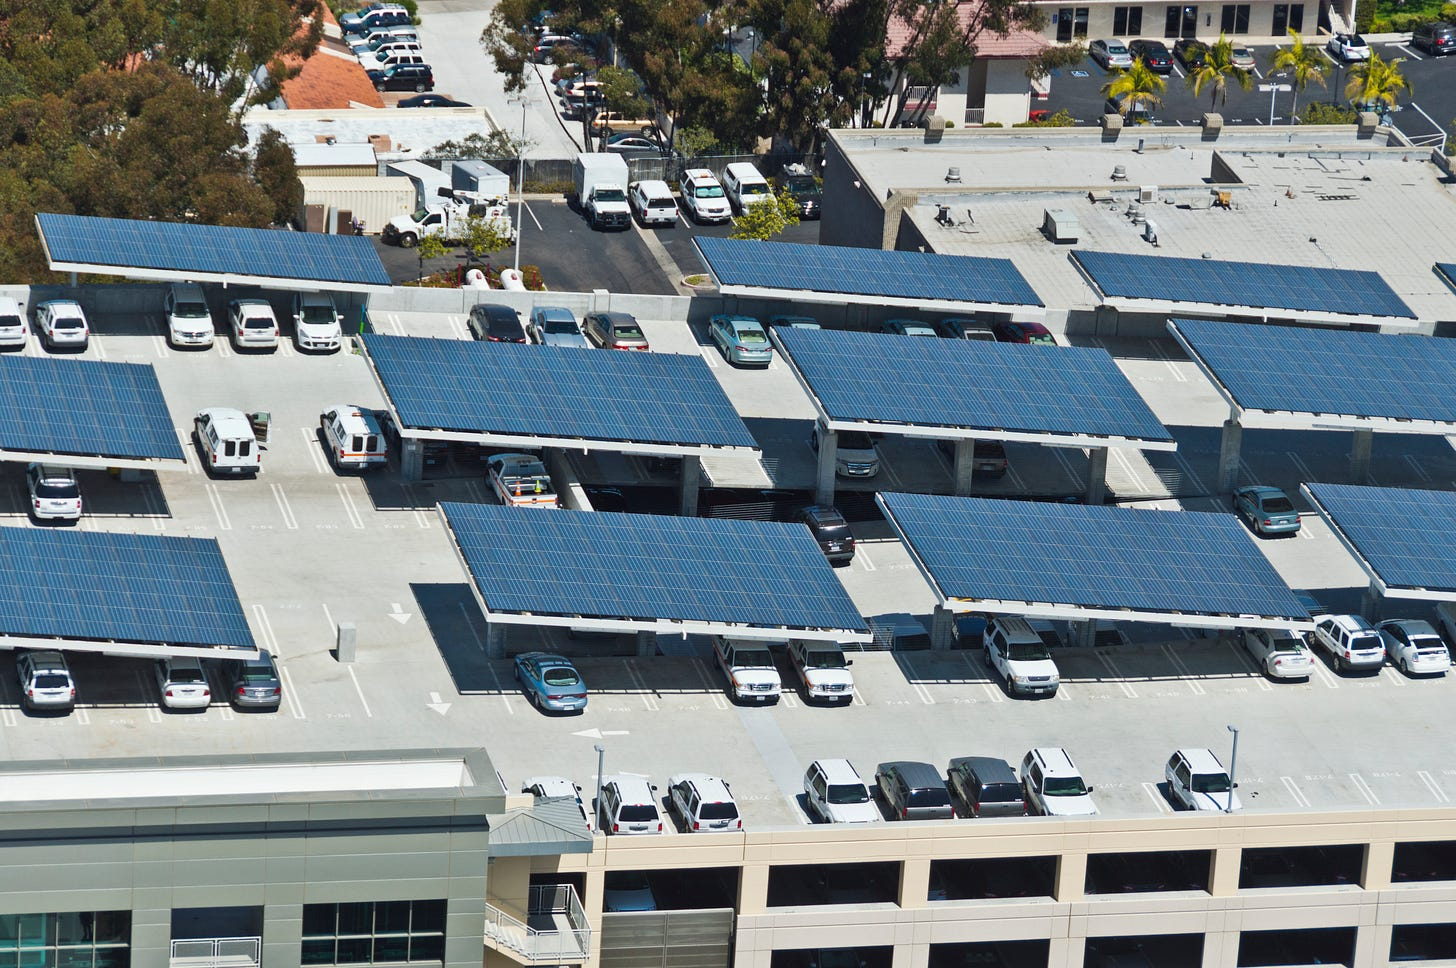 Some distributed solar covering a parking lot. (Photo: Getty Images)